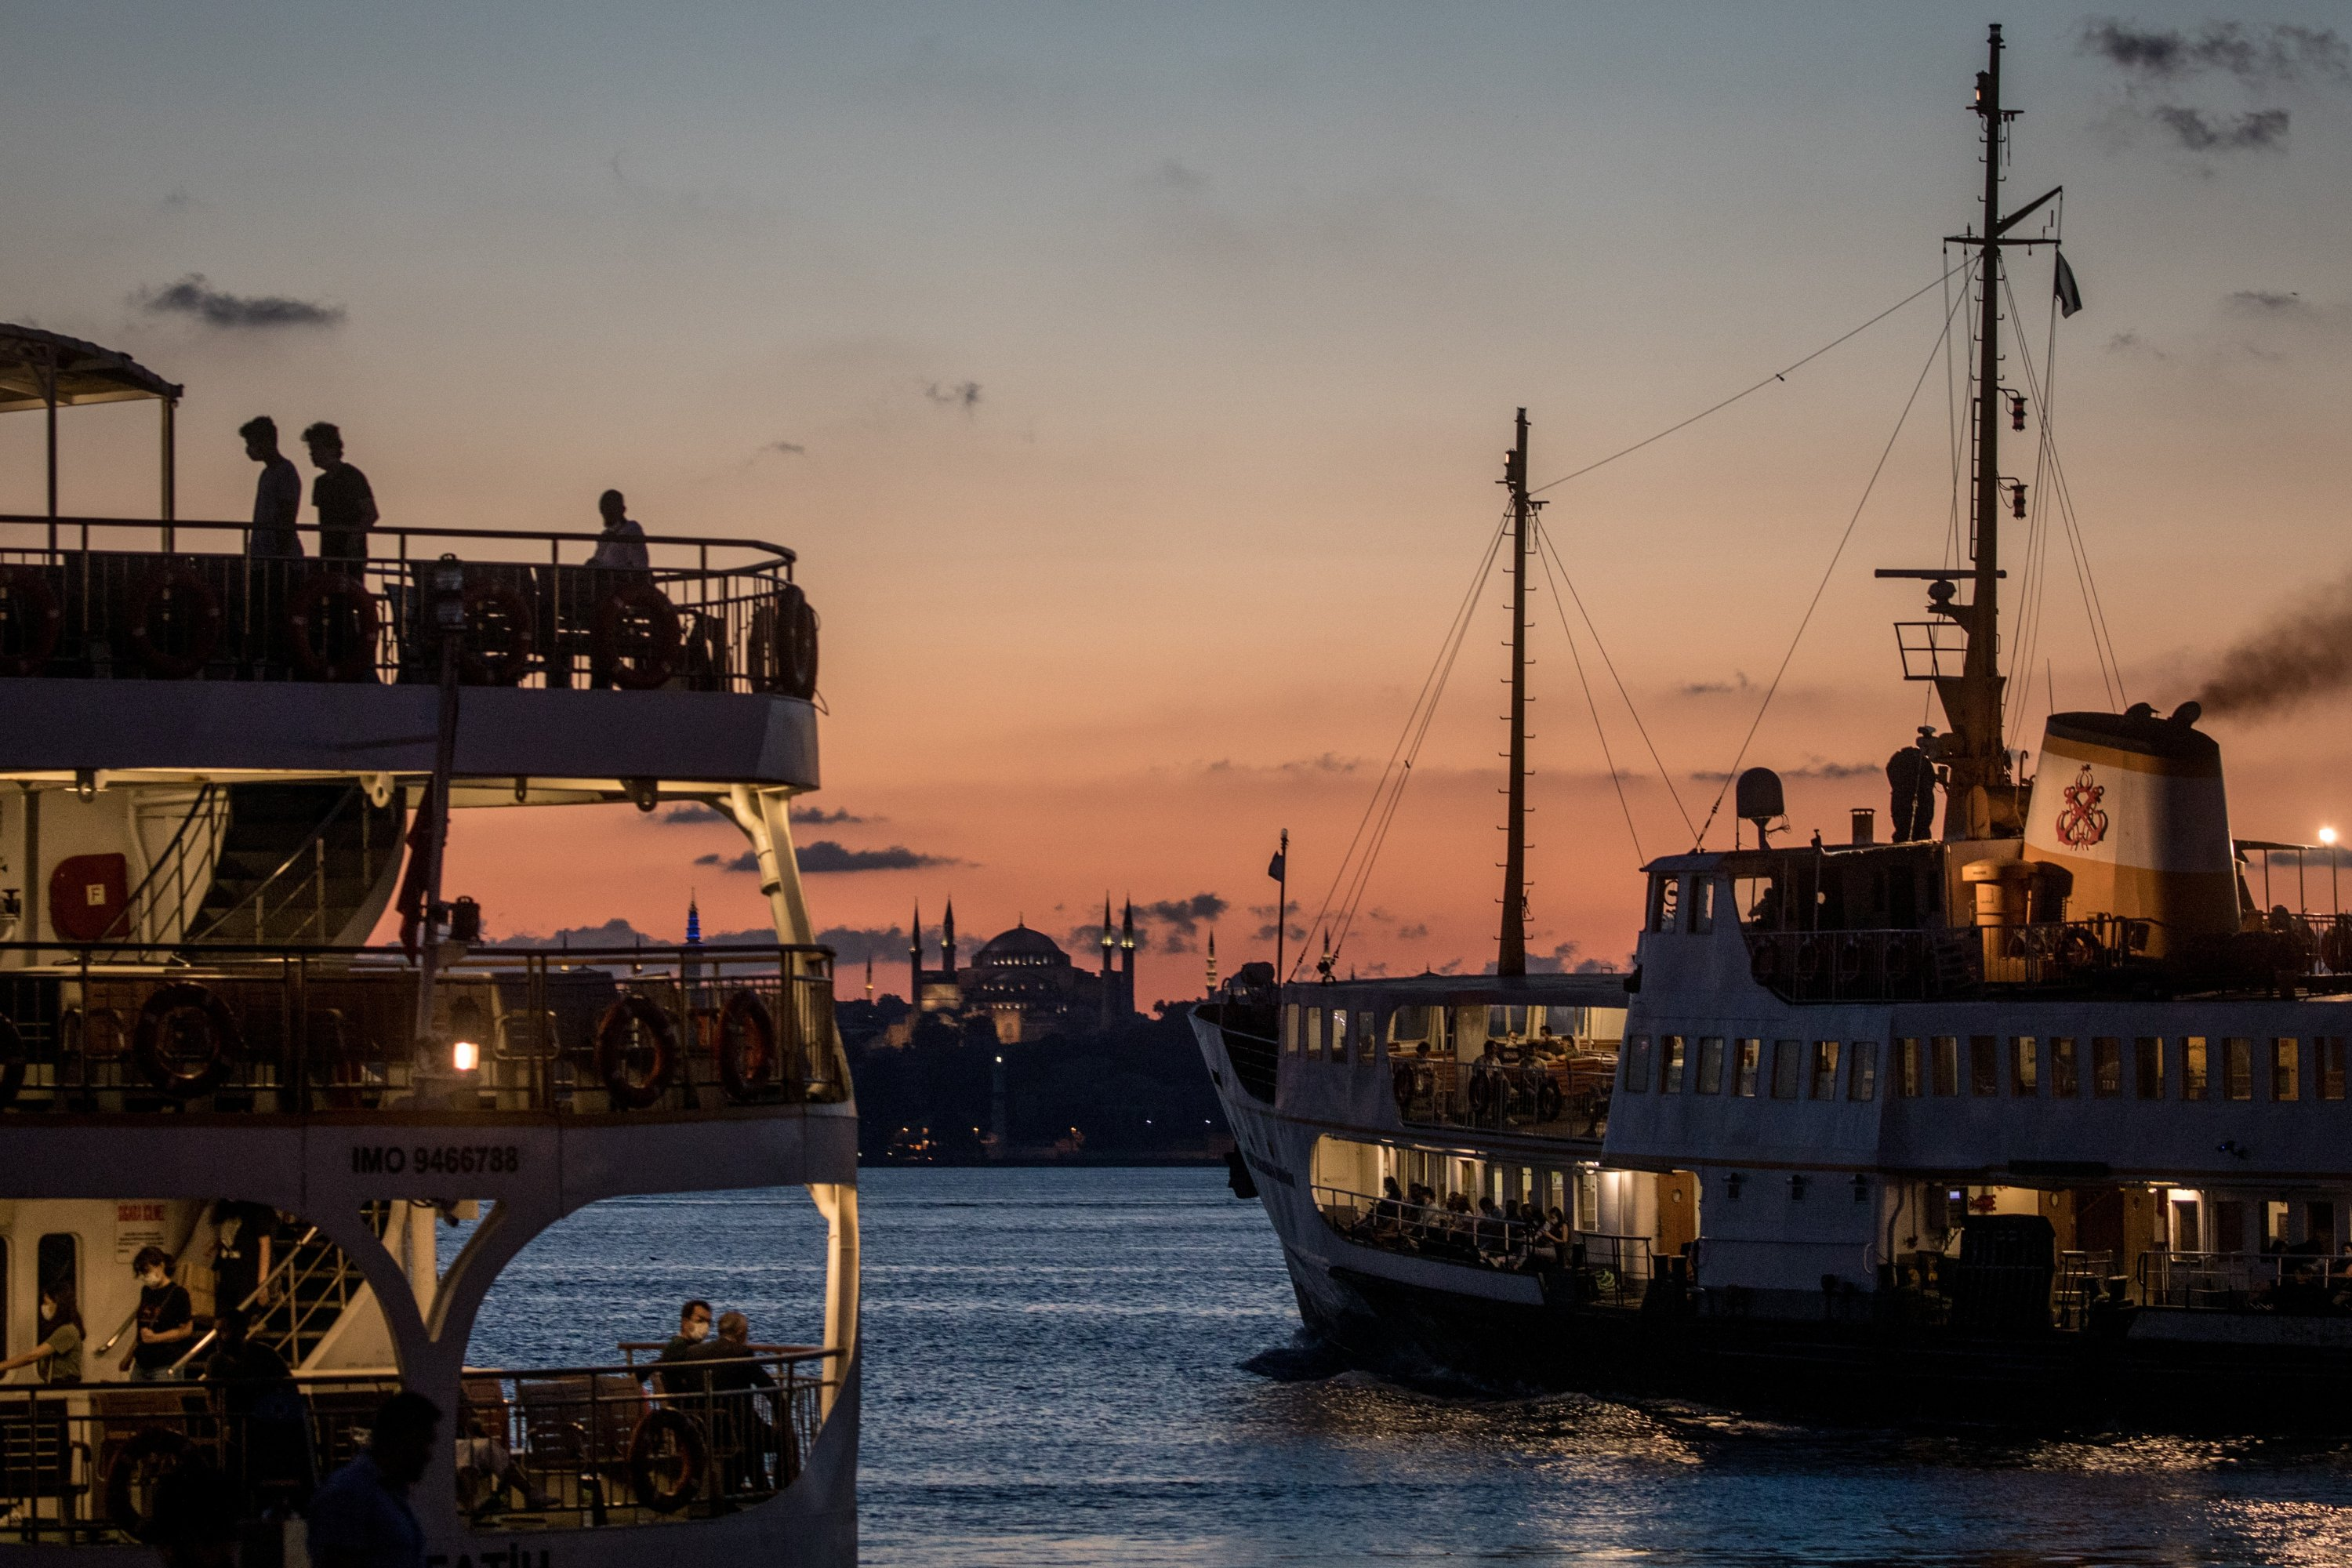 Ferries pass in front of the Hagia Sophia Grand Mosque at sunset, Istanbul, Turkey, Aug. 5, 2020. (Photo by Getty Images)